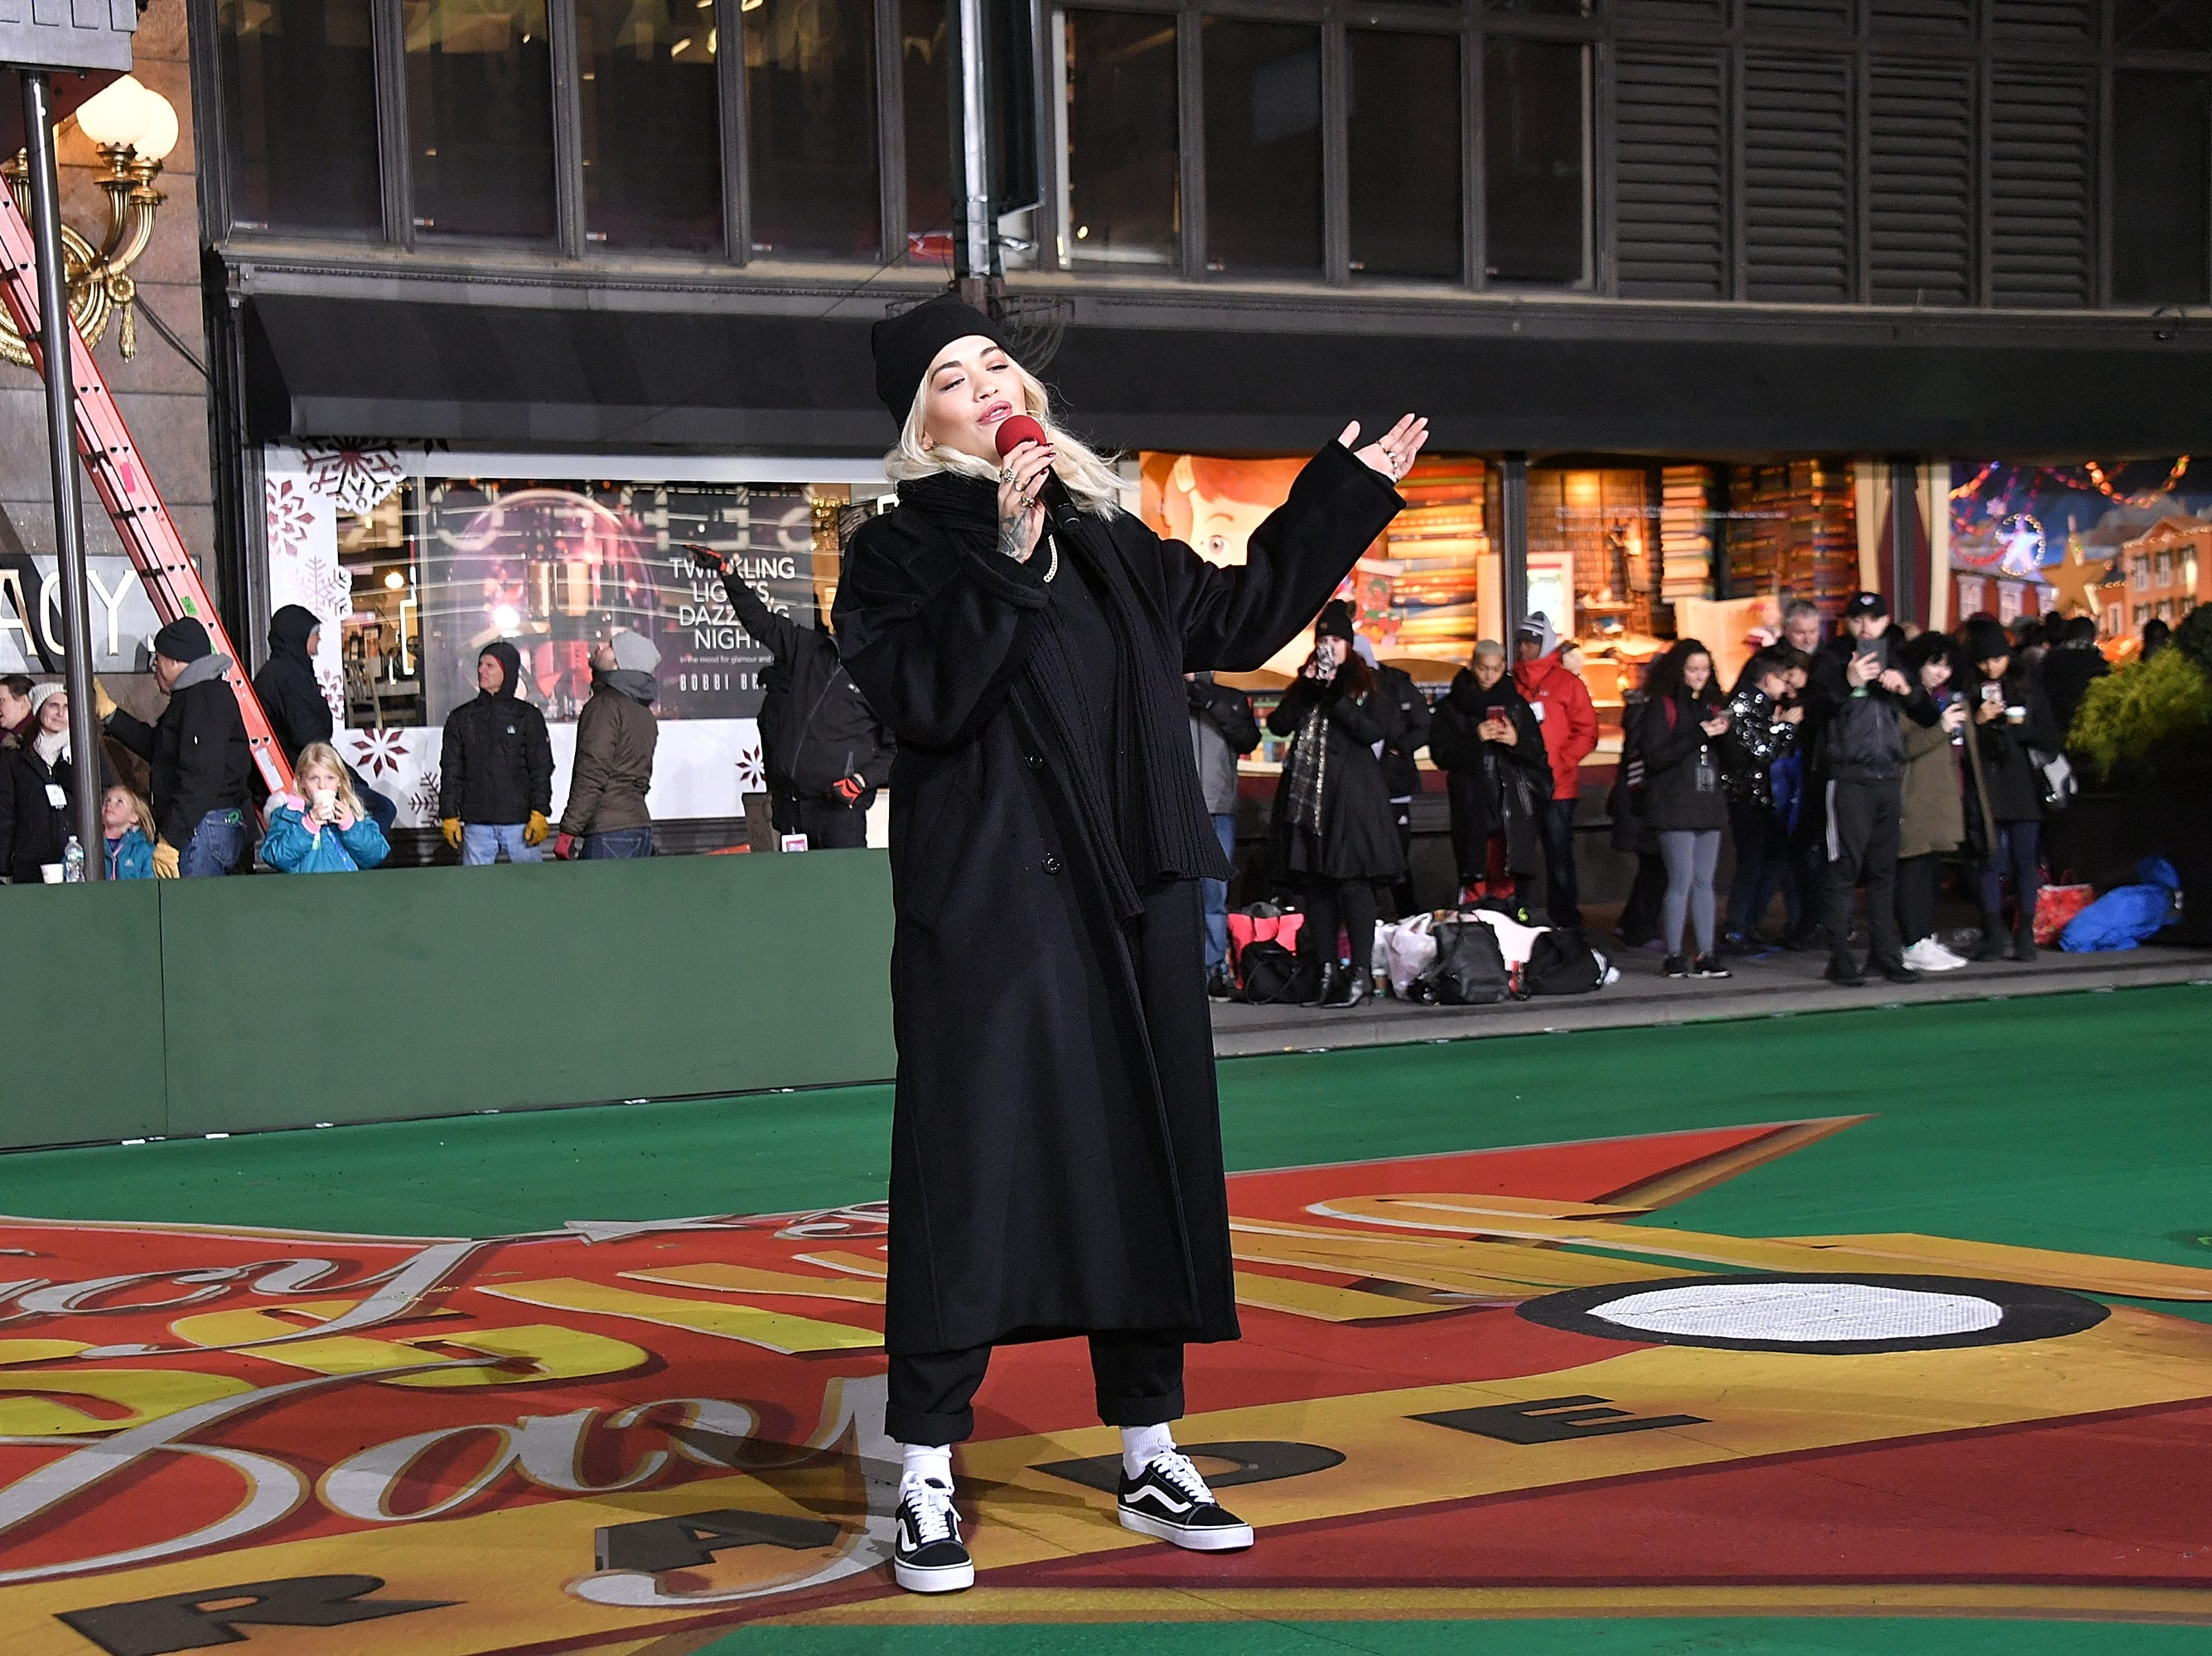 NEW YORK, NY - NOVEMBER 20:  Singer Rita Ora performs during the 92nd Annual Macy's Thanksgiving Day Parade day two of rehearsals on November 20, 2018 in New York City.  (Photo by Michael Loccisano/Getty Images)